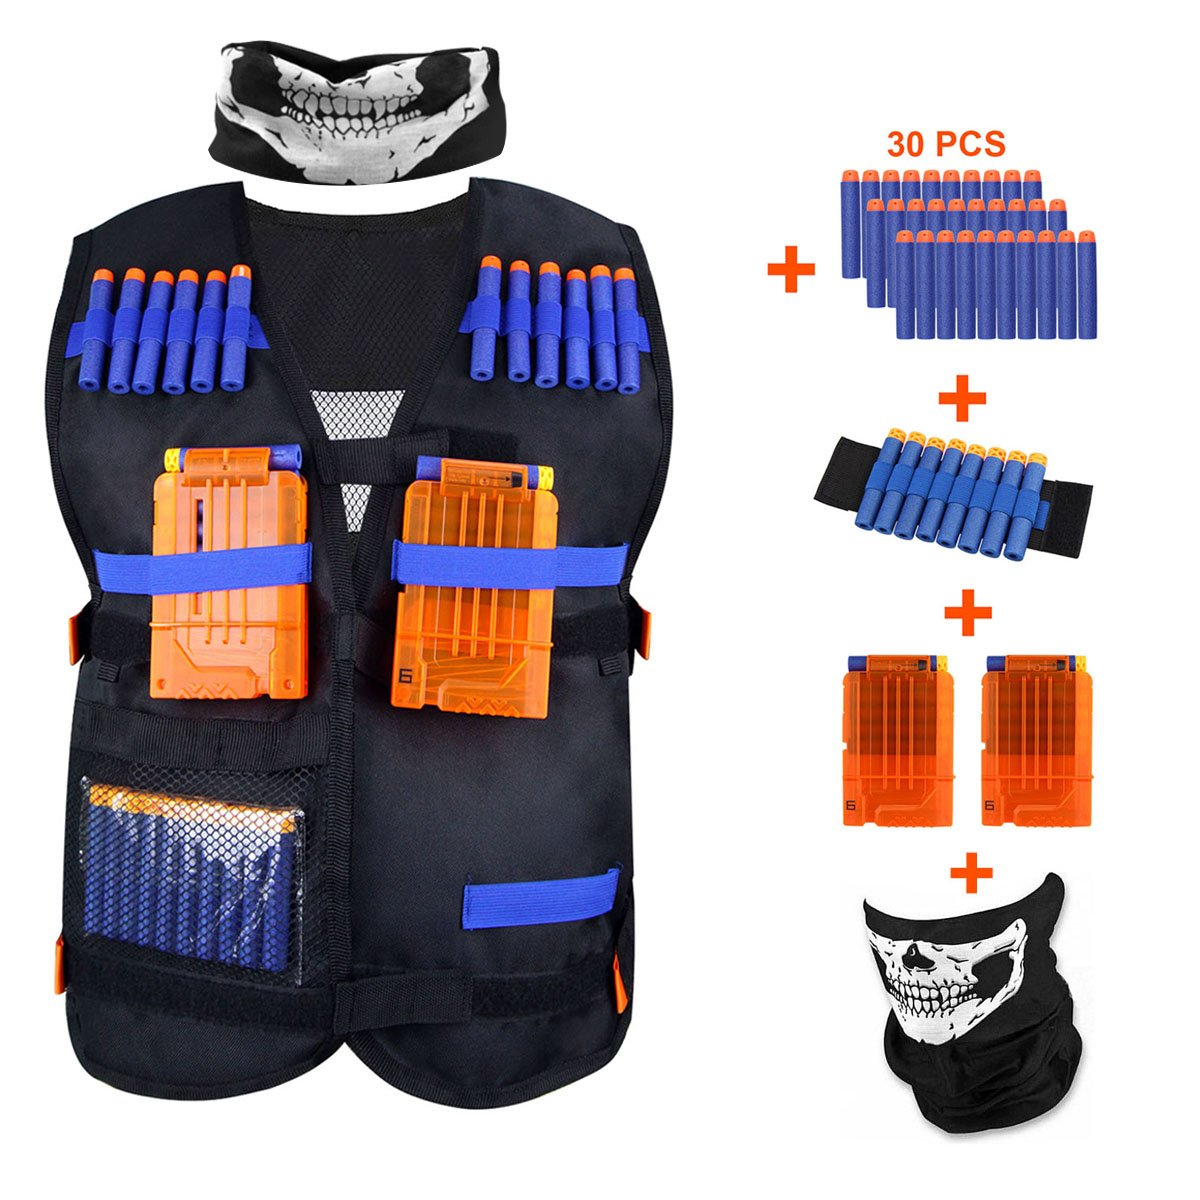 KINBON Kids Tactical Vest Kit, Adjustable Boys Nerf Vest for EVA Nerf N-strike Elite Series Kids with 30 Pcs Foam Darts + 2Pcs 6-dart Quick Reload Clip + 1Pcs Skull Mask+ 1Pcs 8-dart Wrist Band by KINBON